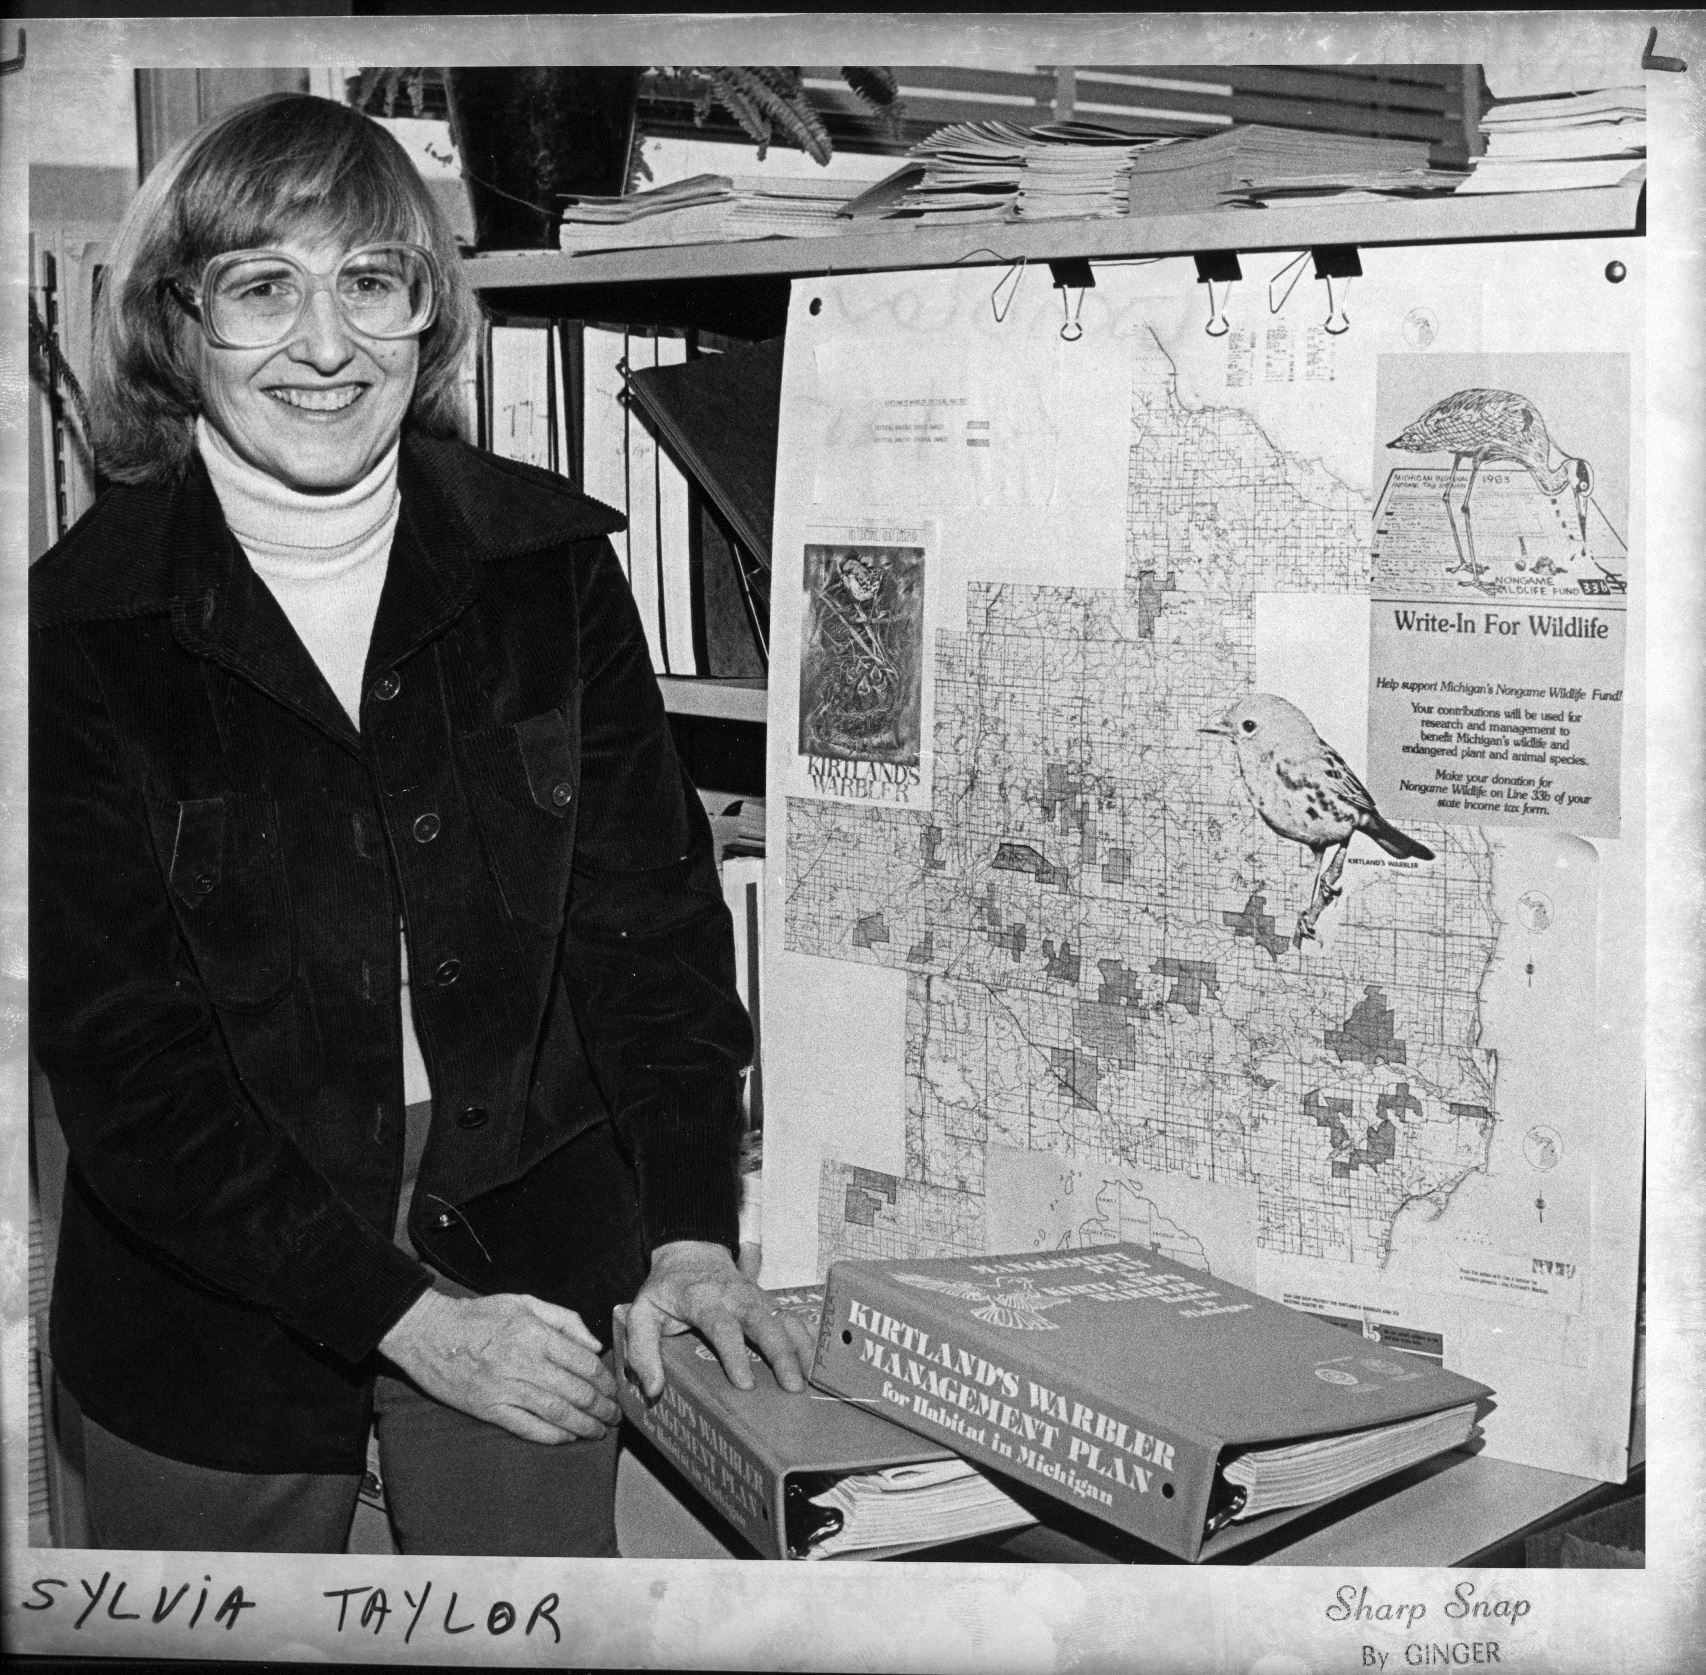 In a black-and-white image, Sylvia Taylor is pictured with a map and other Kirtland's warbler materials.